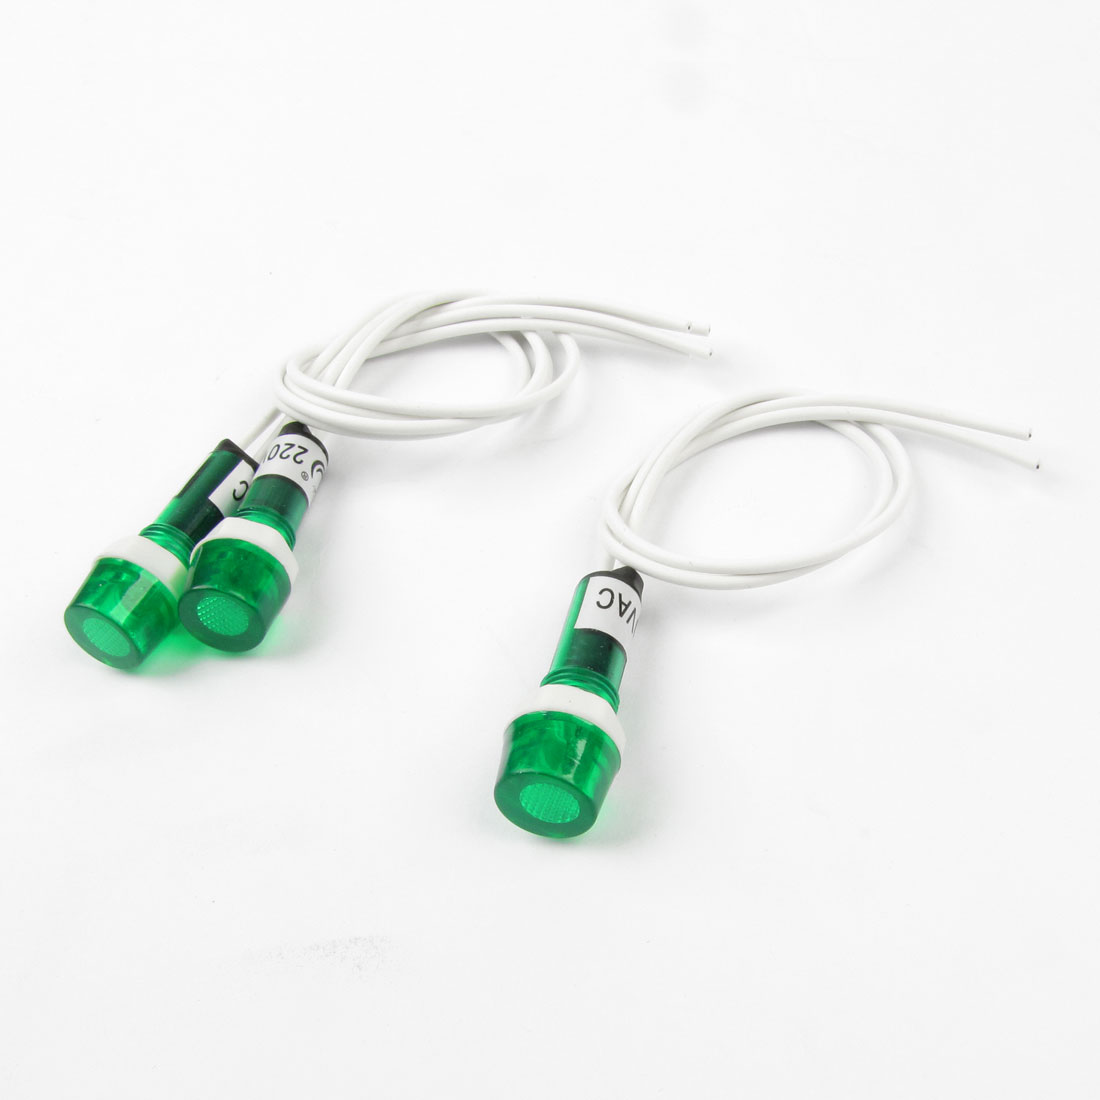 "AC 220V Green Water Heater Indicator Light w 8.1"" Long Cable 3Pcs"